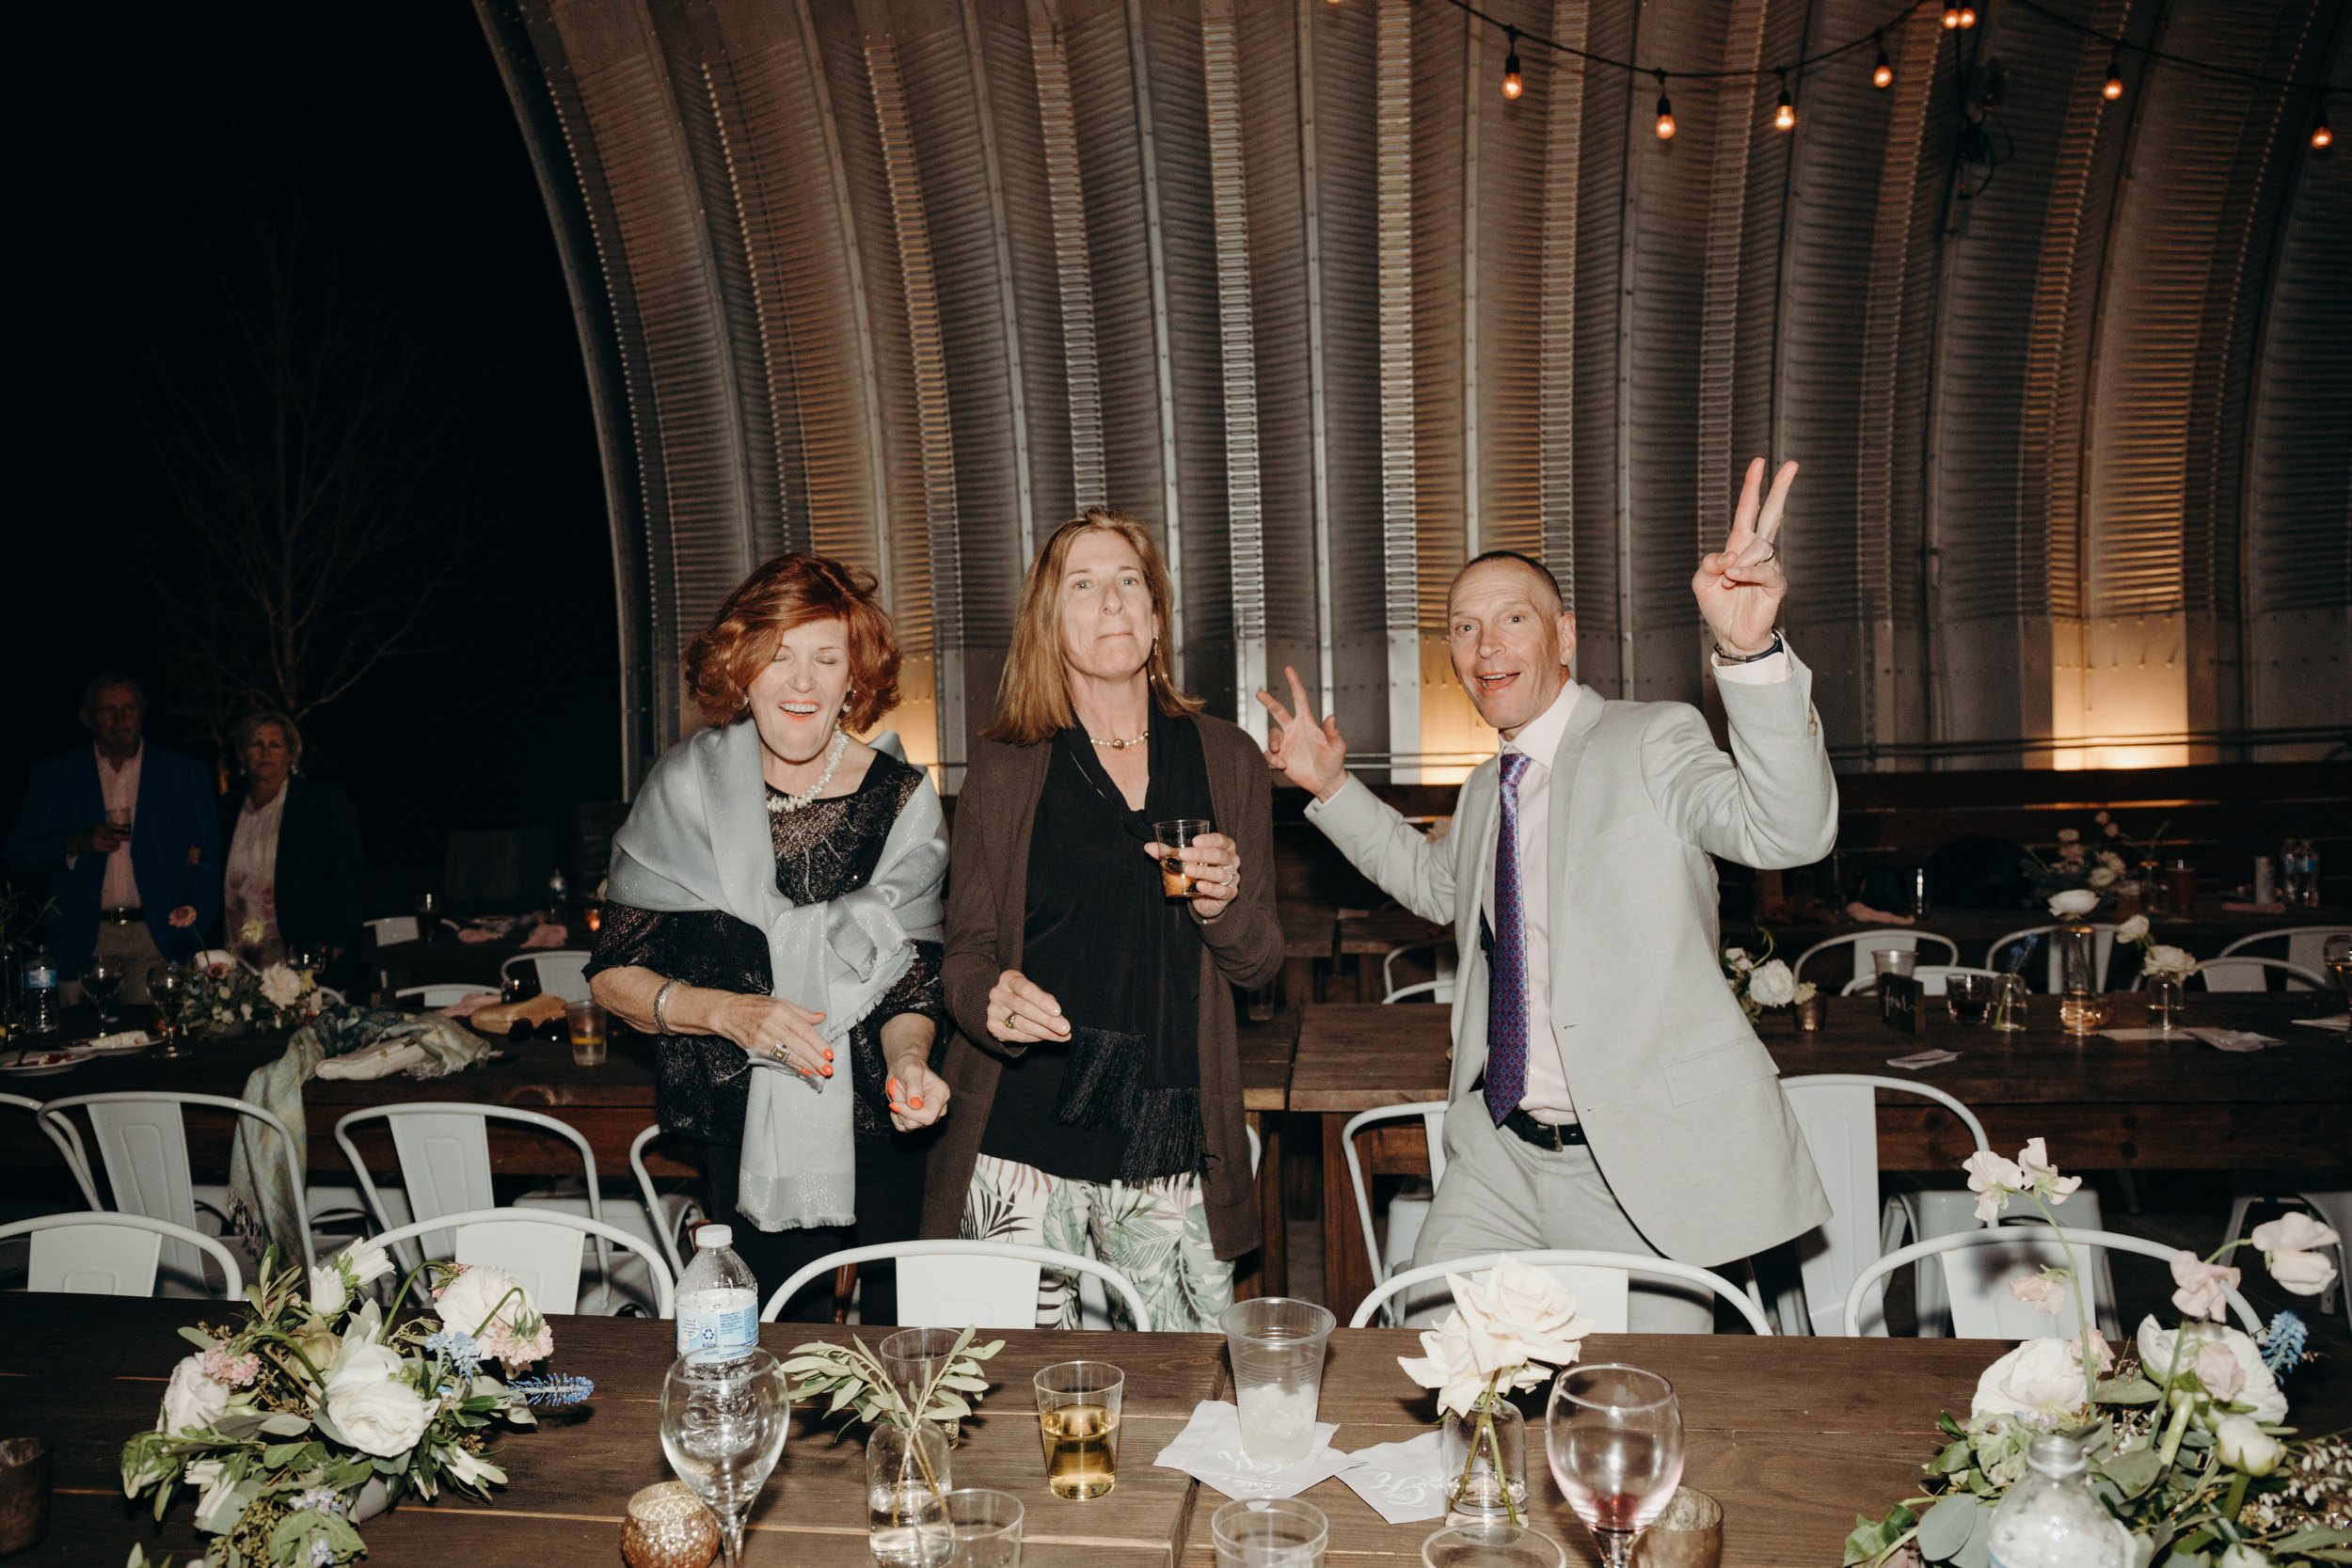 Reception   Wedding   Chris and Kristen   congaree and penn   Jacksonville florida  Documented by Vanessa Boy (472 of 328)final.jpg